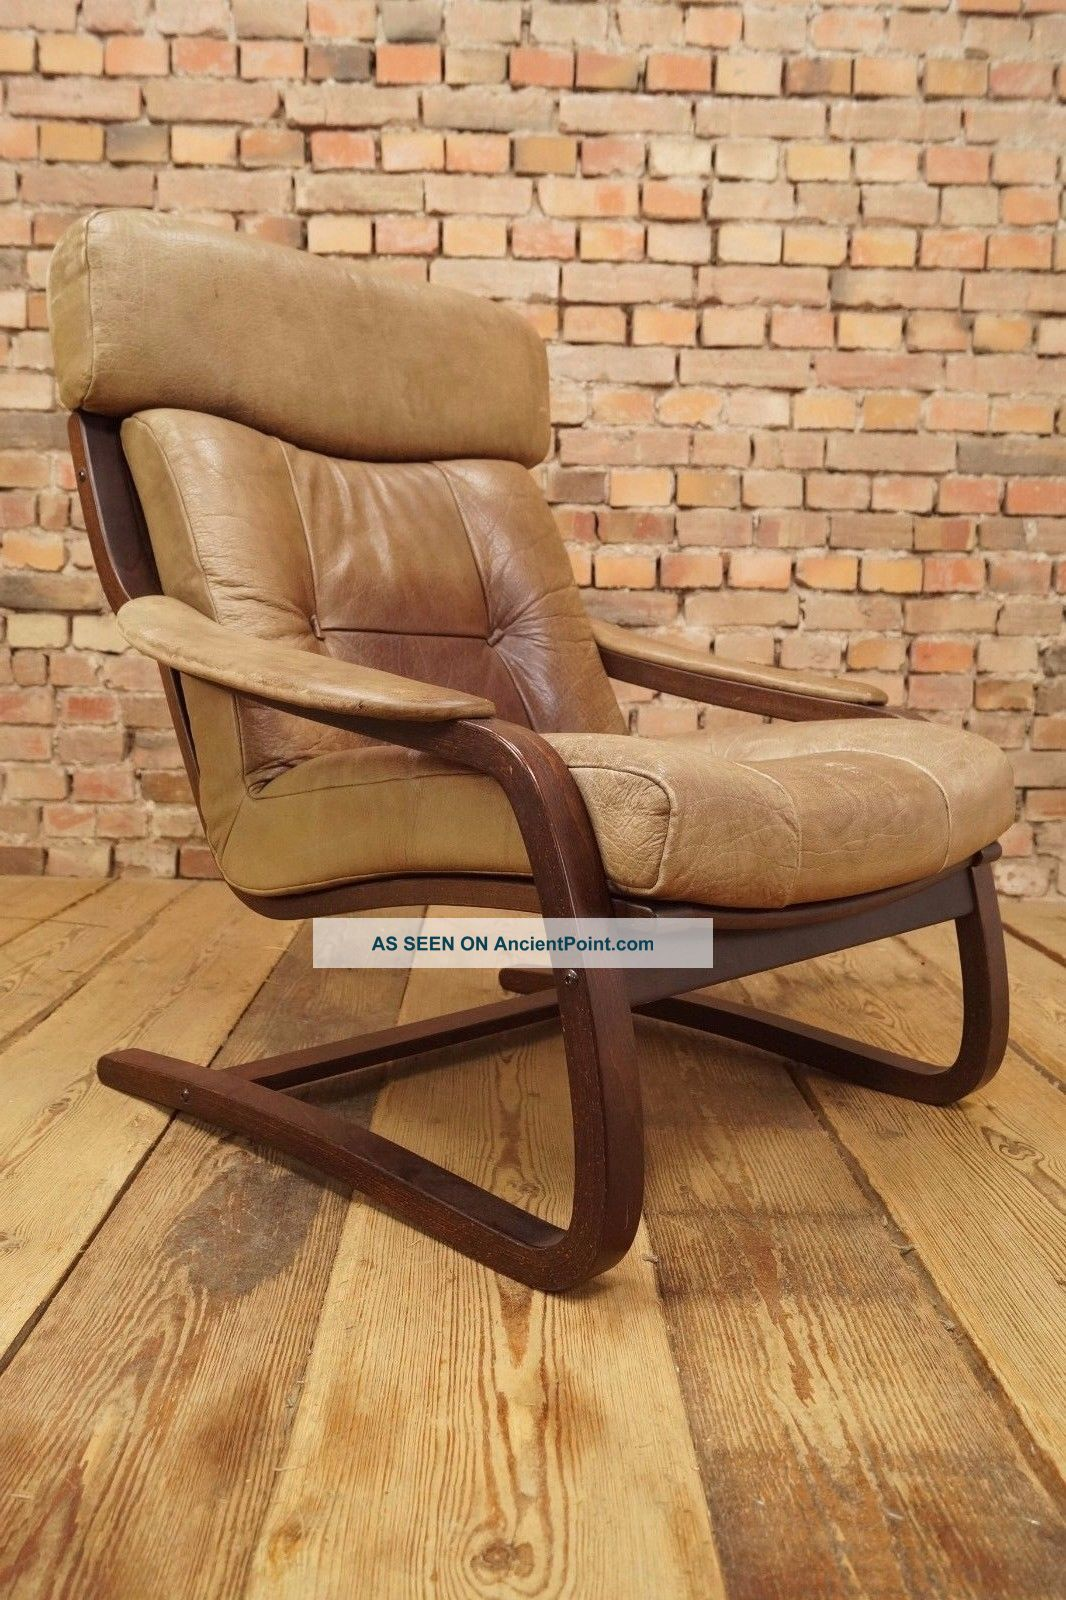 60s Retro Easy Chair Danish Leather Lounge Armchair Cantilever Fauteuil Vintage 1900-1950 photo